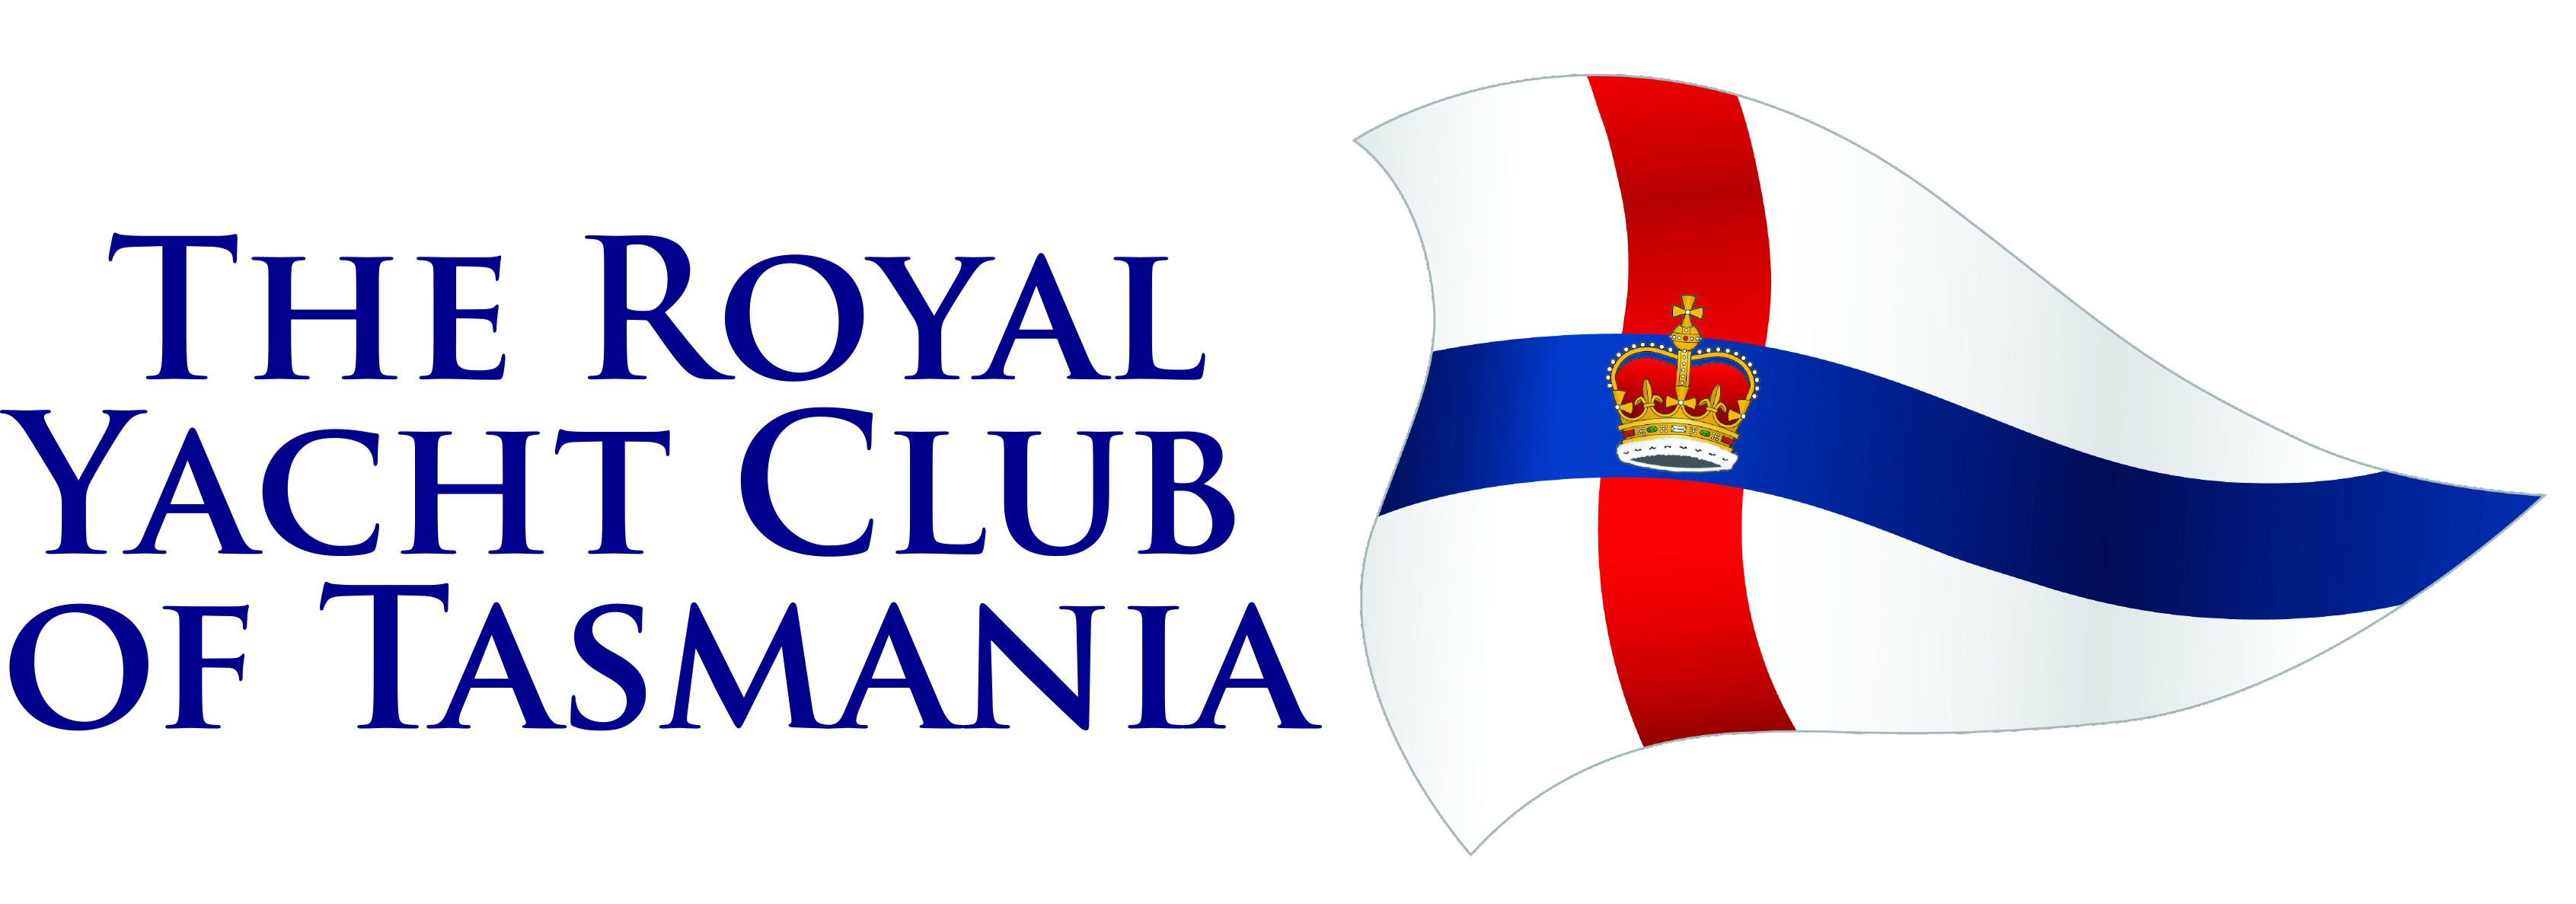 Royal Yacht Club of Tasmania